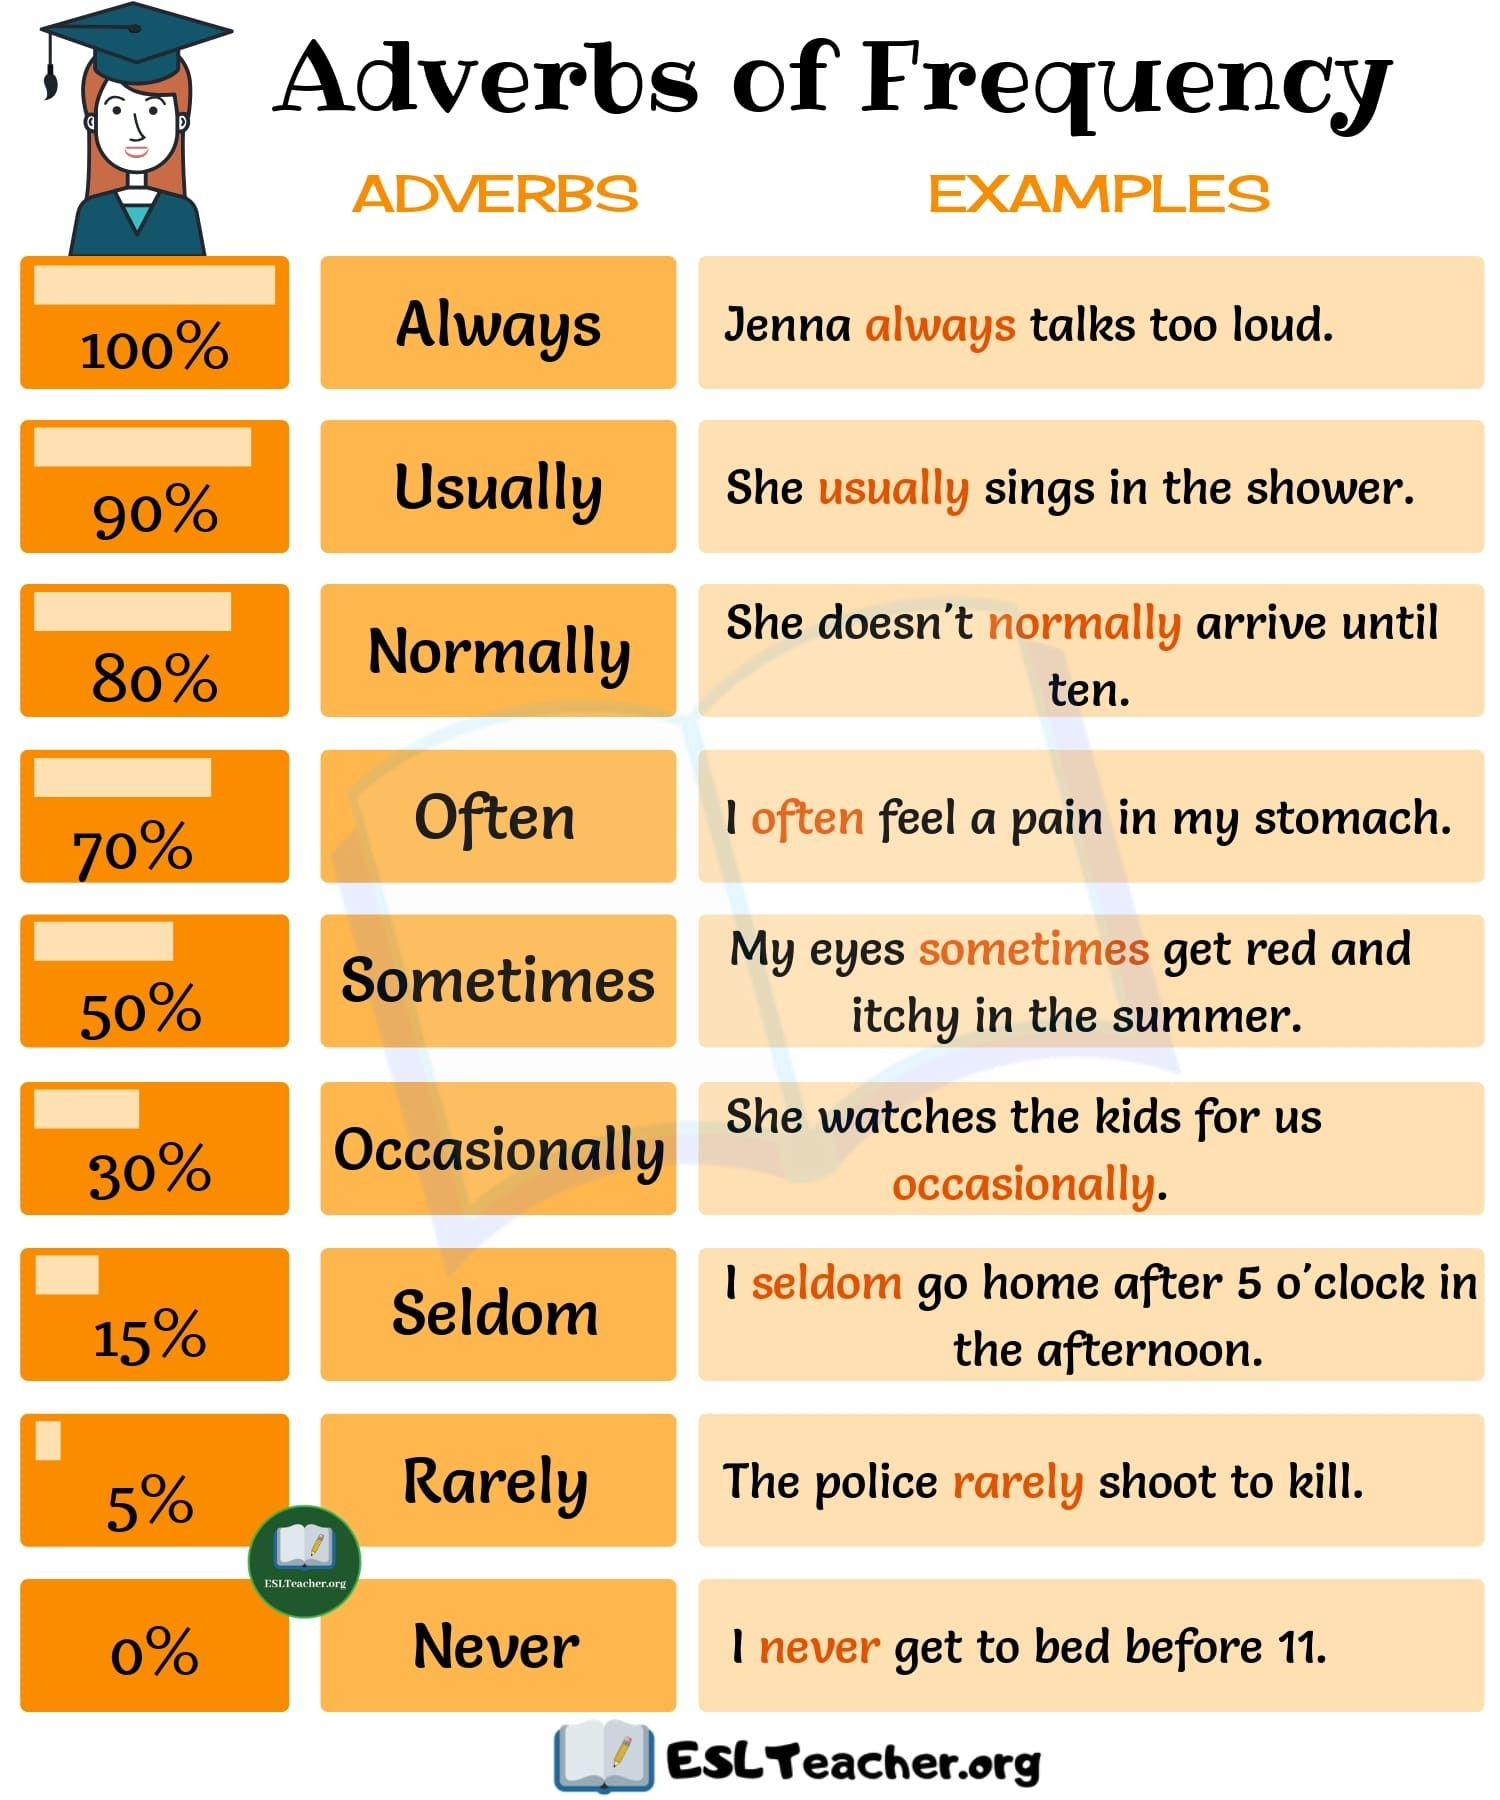 Adverbs Of Frequency Useful List Of Adverbs Of Frequency